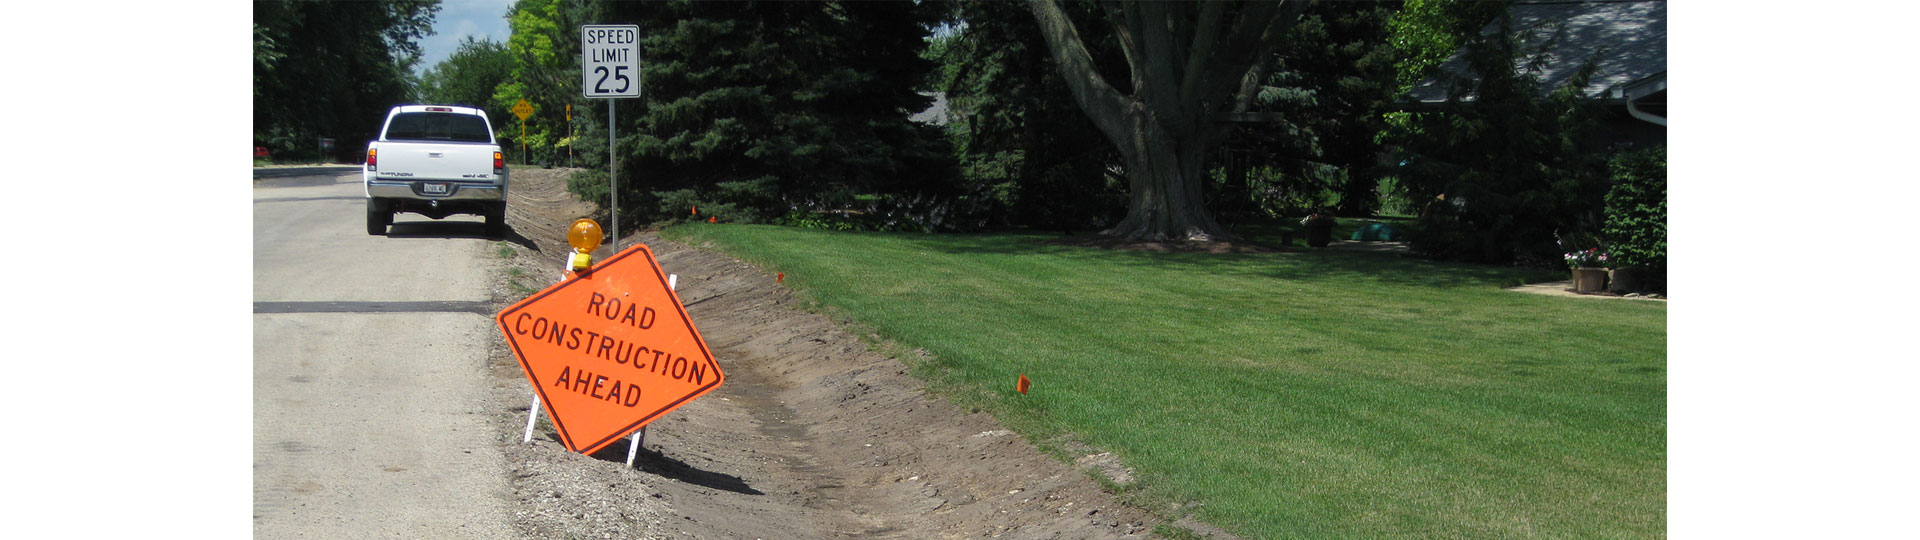 Nunda Road District Road Construction Ahead